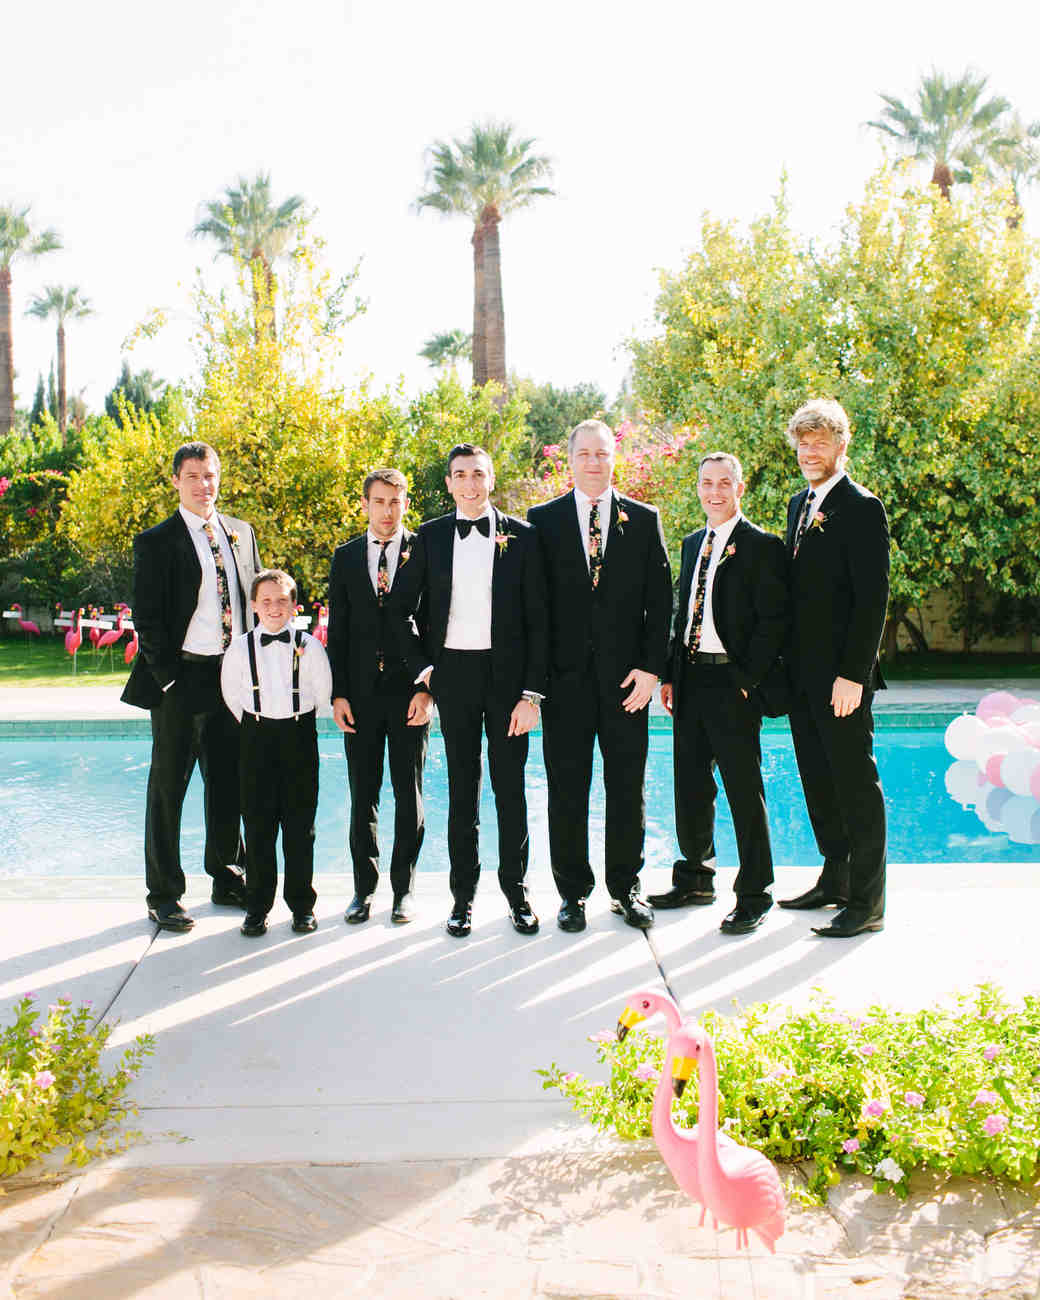 kelly-jeff-wedding-palm-springs-groomsmen-0389-s112234.jpg